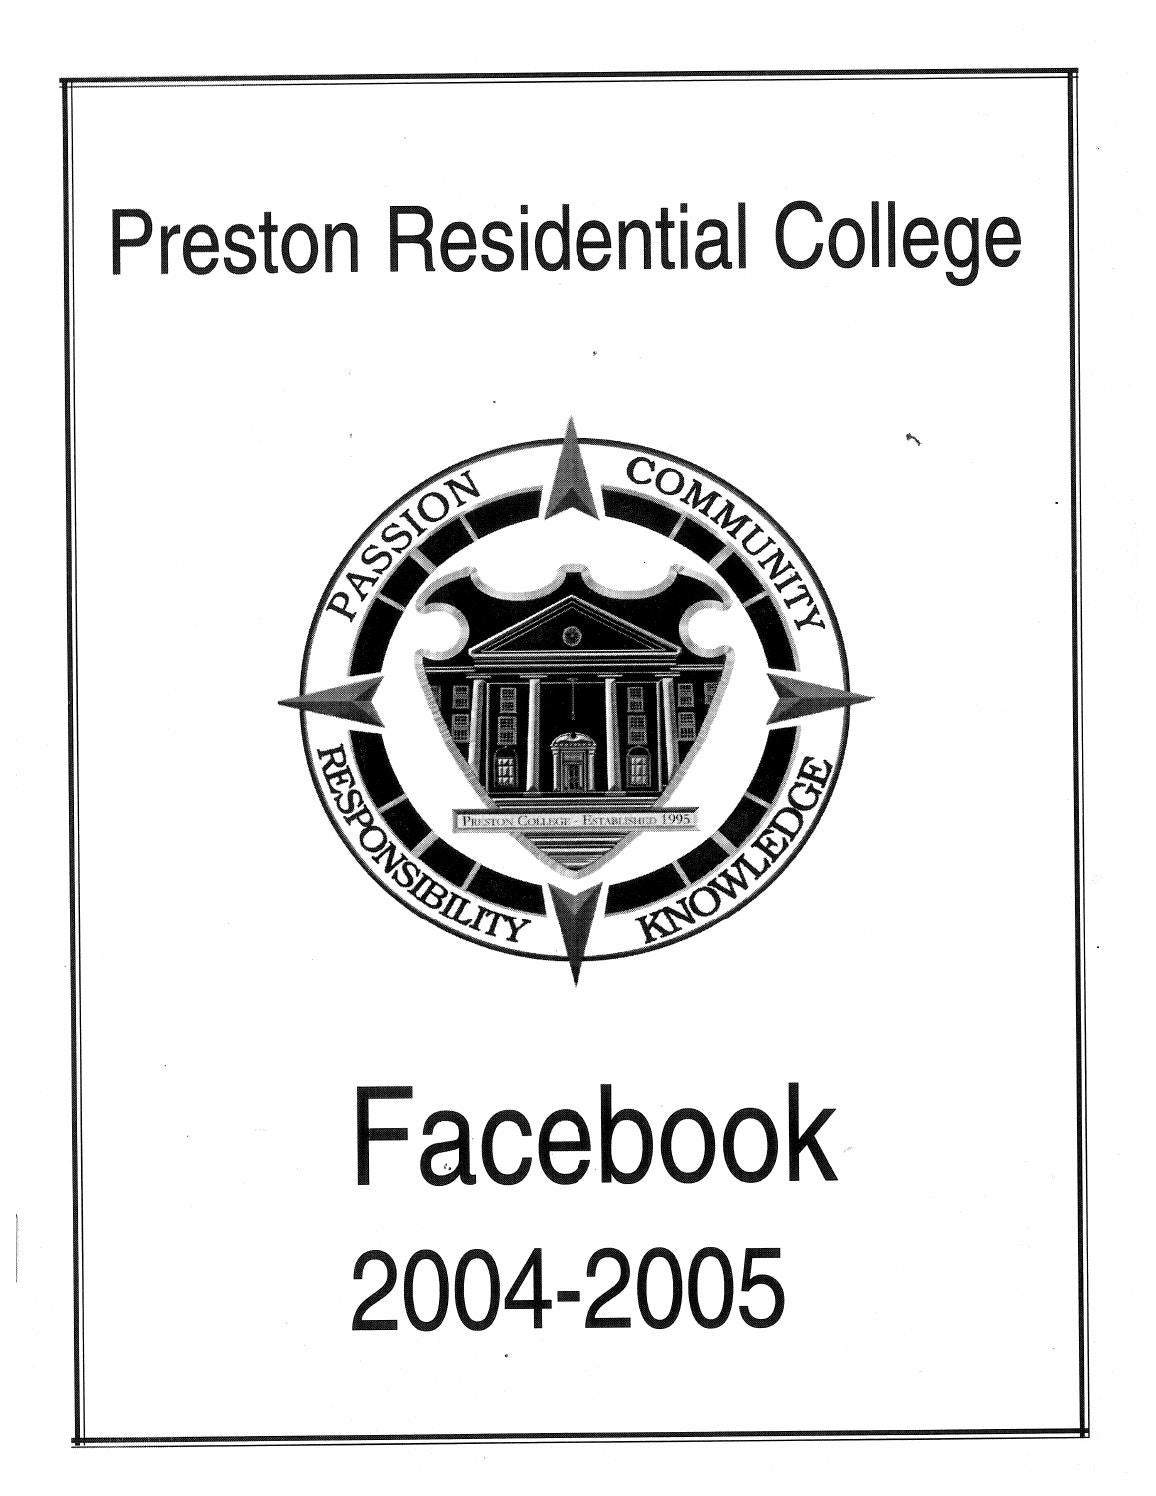 Preston Residential College Facebook 2004-2005 by Preston